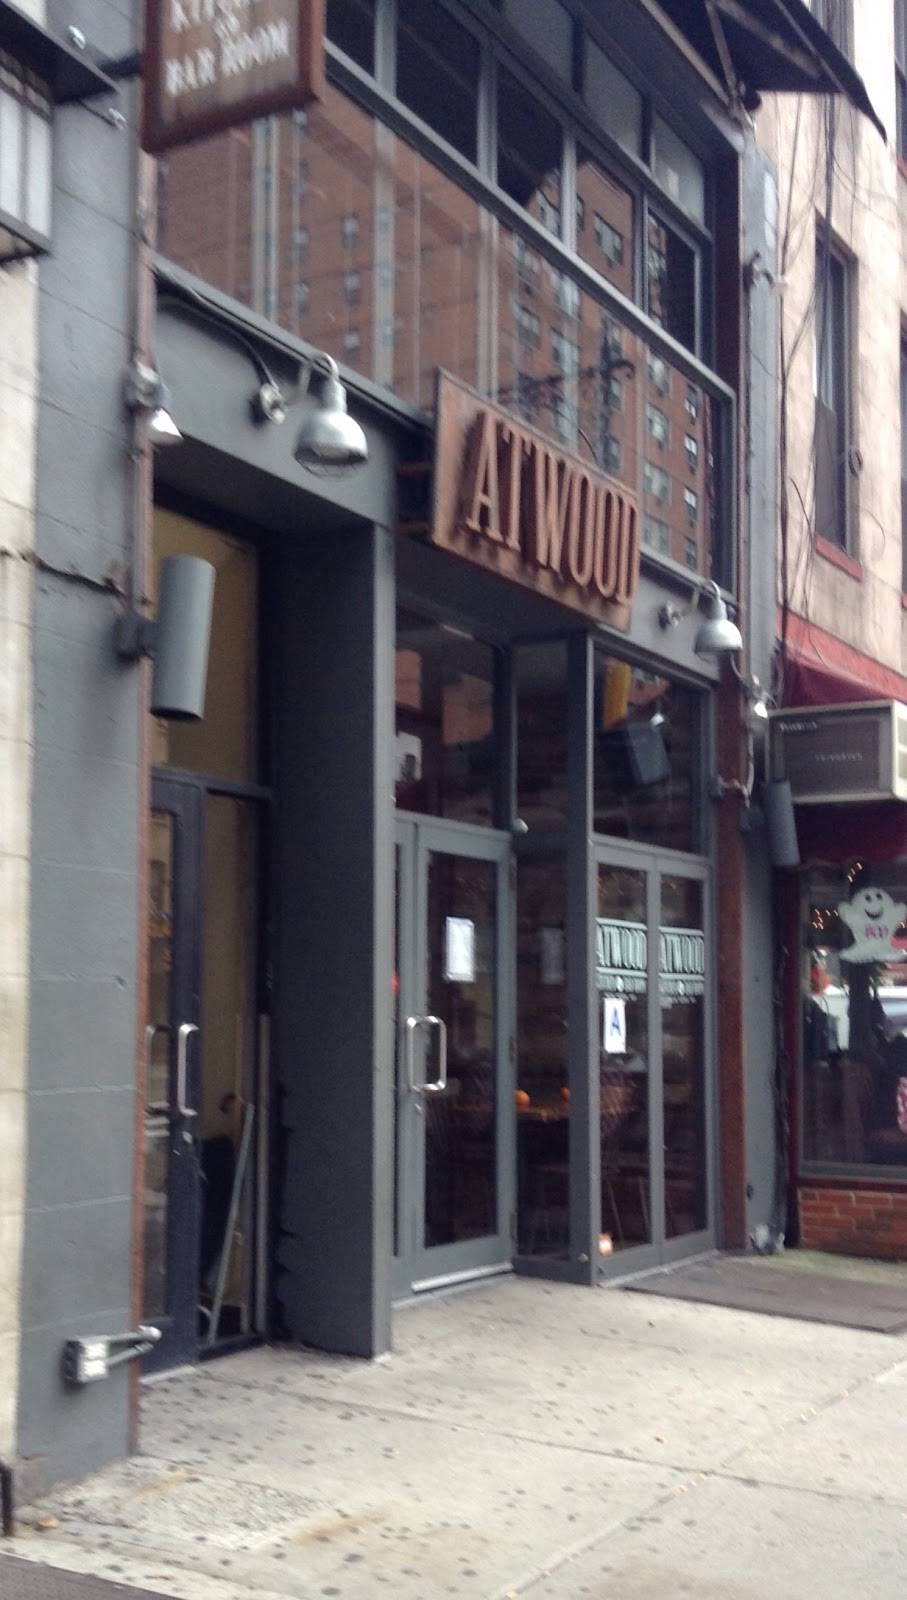 Atwood Bar & Lounge | restaurant | 986 2nd Ave, New York, NY 10022, USA | 2123712233 OR +1 212-371-2233